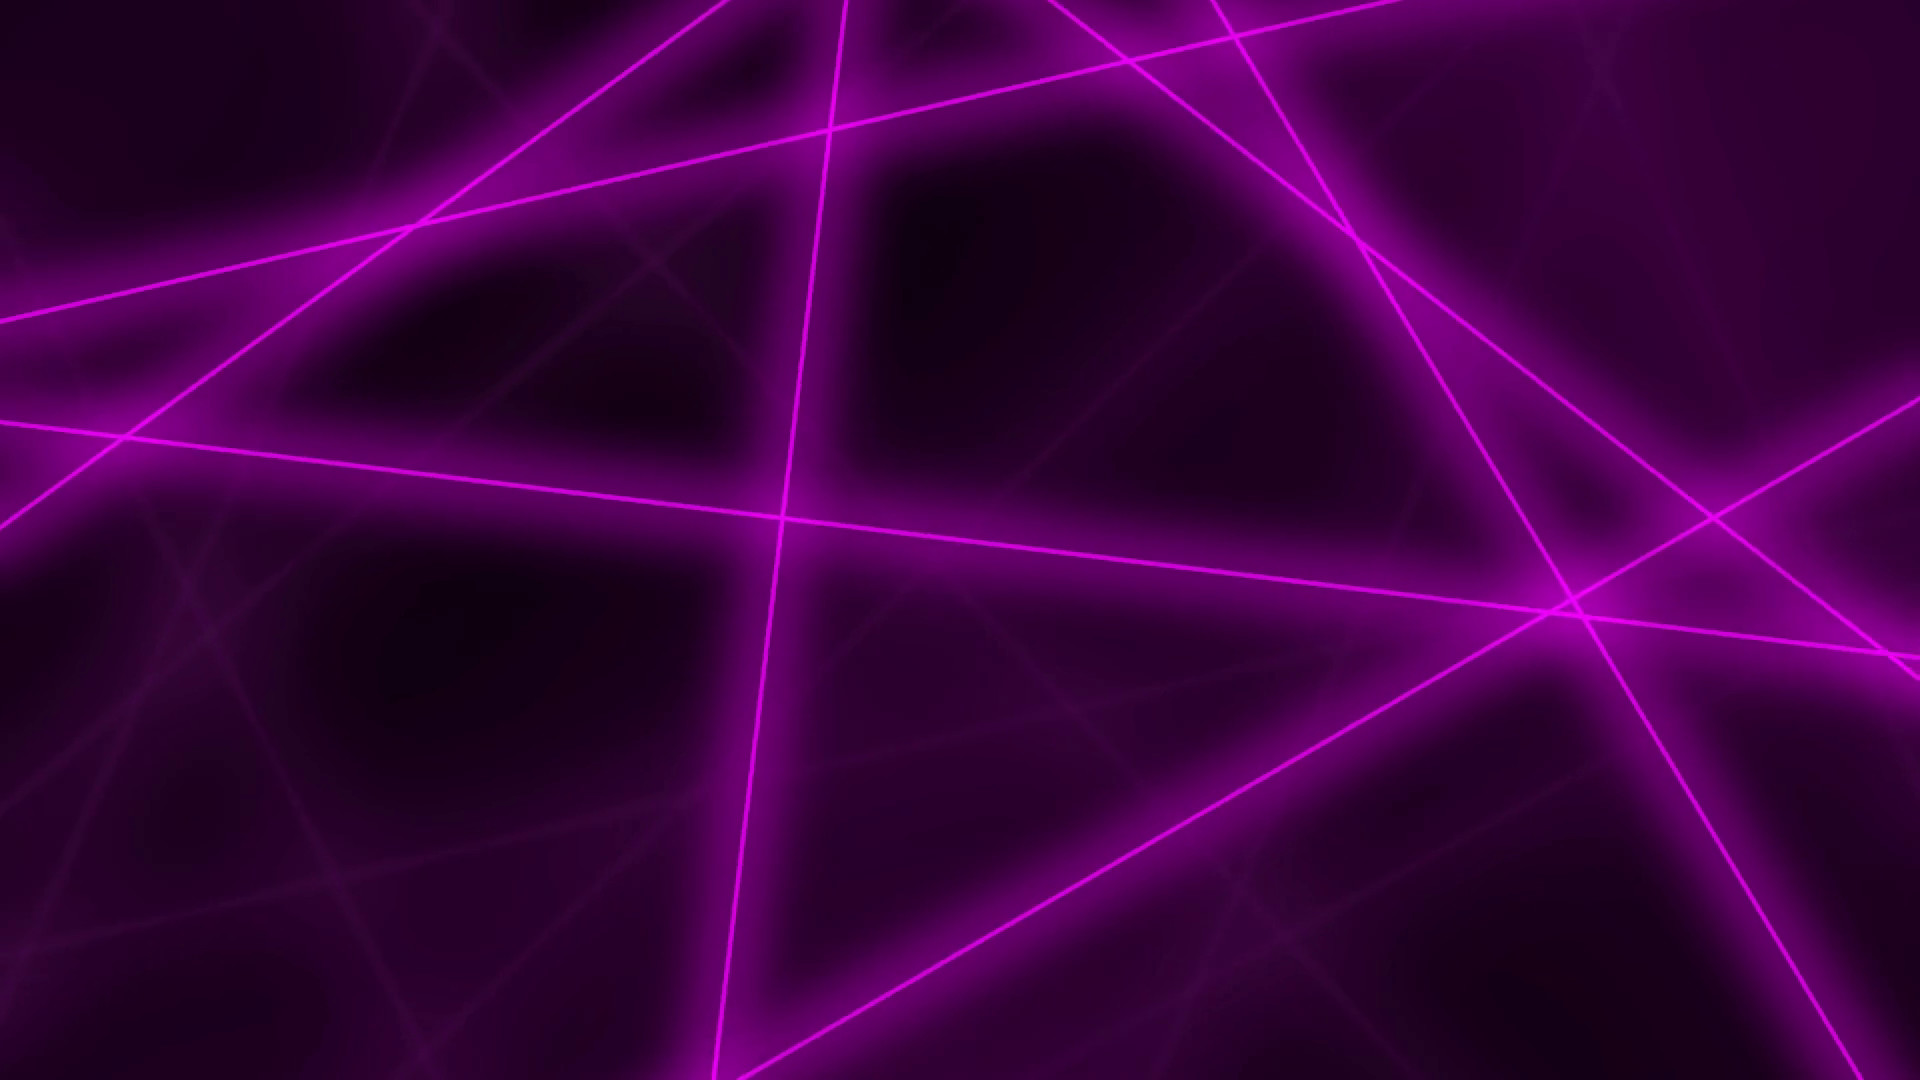 Abstract Purple Background 49 Images